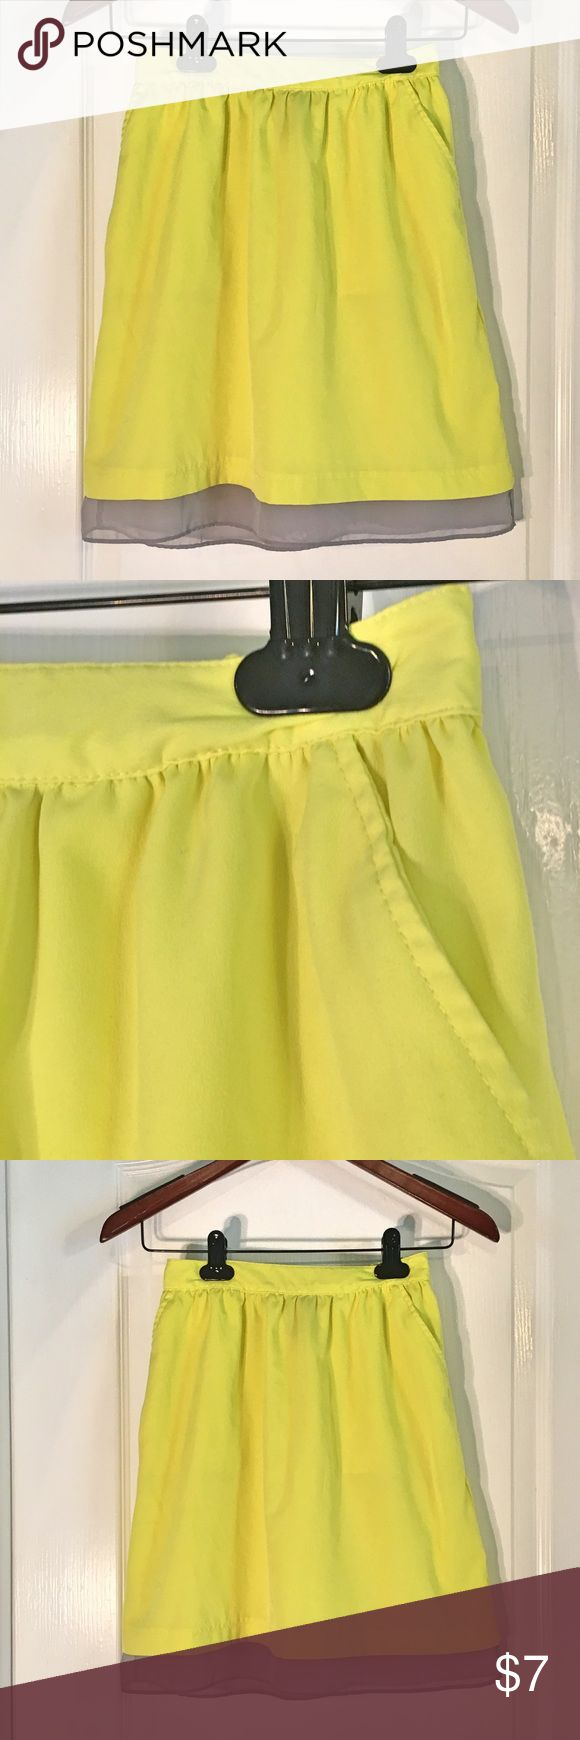 "Mossimo Neon Yellow & Gray Sheer Trim Skirt Mossimo Neon Yellow & Gray Sheer Trim Lightweight Skirt With Pockets ~ Size XS ~ 100% Polyester ~ Waist is 11 1/2"" (not stretched) ~ Length is approximately 18"" ~ Has a stretchy back waist ~ Mossimo Supply Co Skirts"